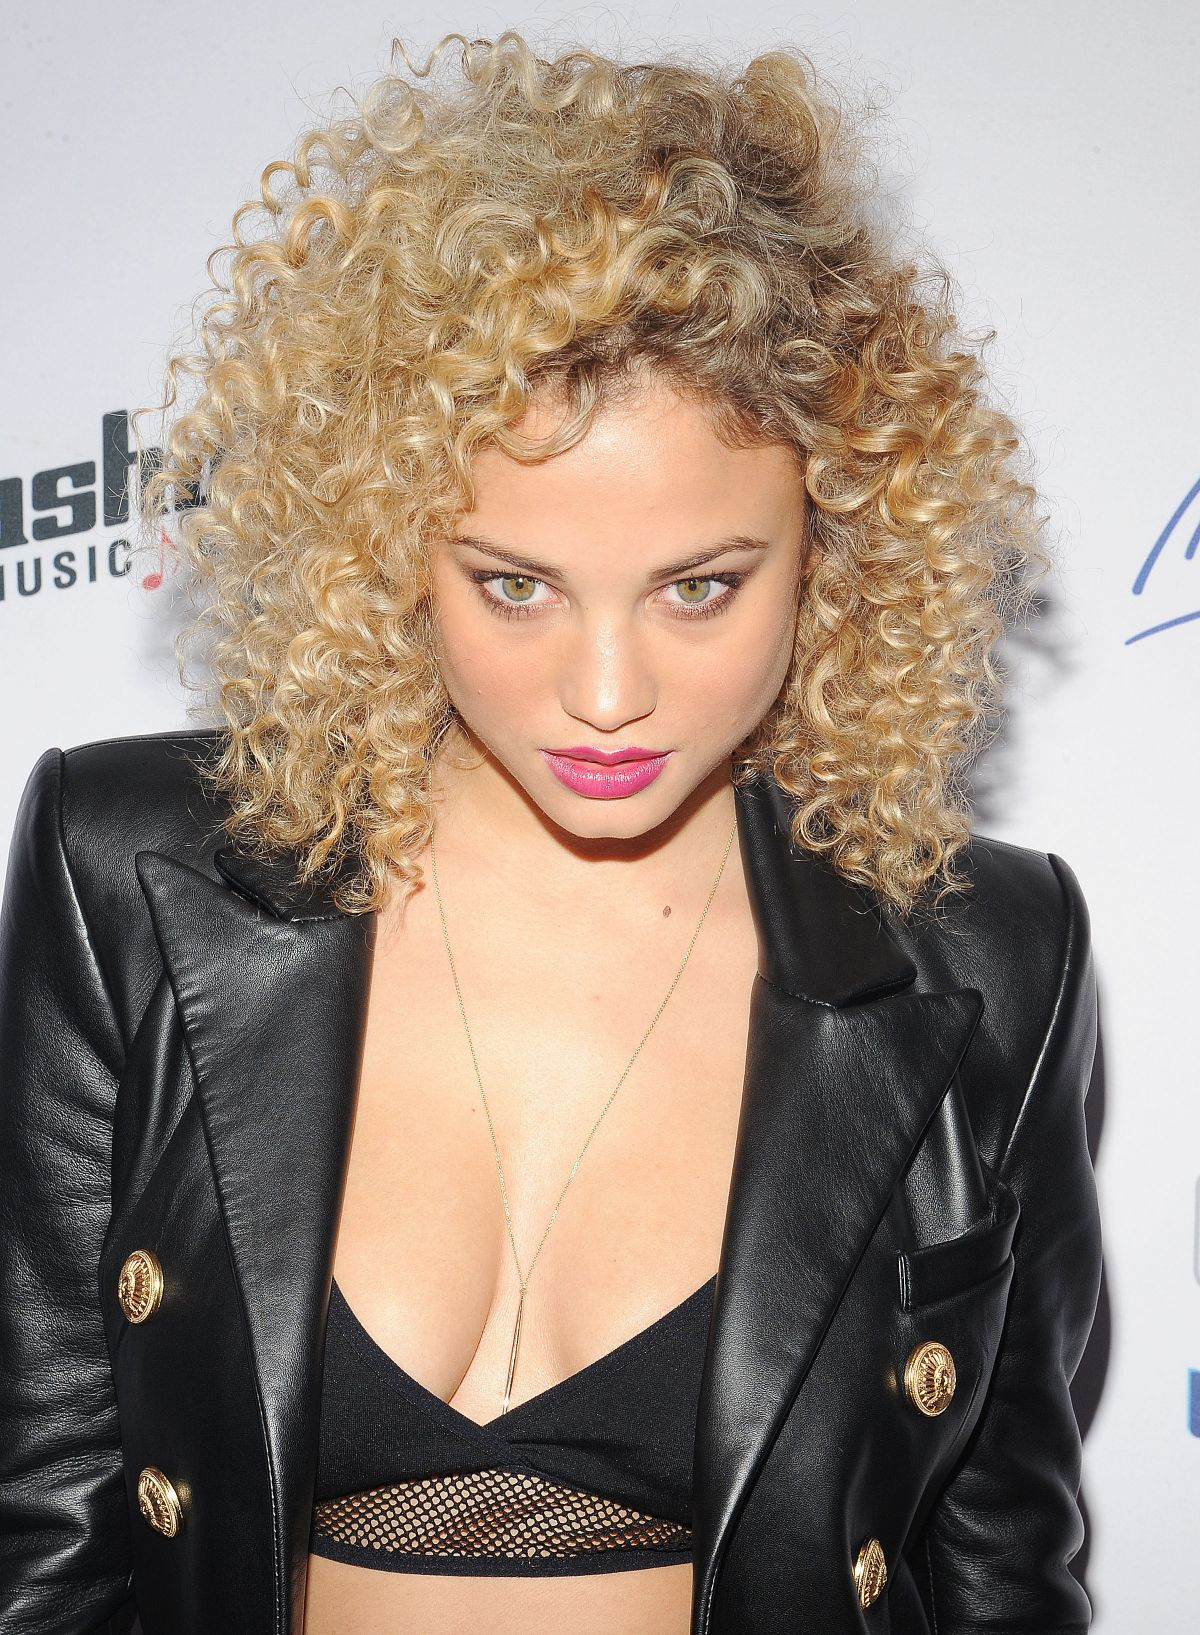 Paparazzi Rose Bertram nudes (86 foto and video), Sexy, Is a cute, Twitter, panties 2020